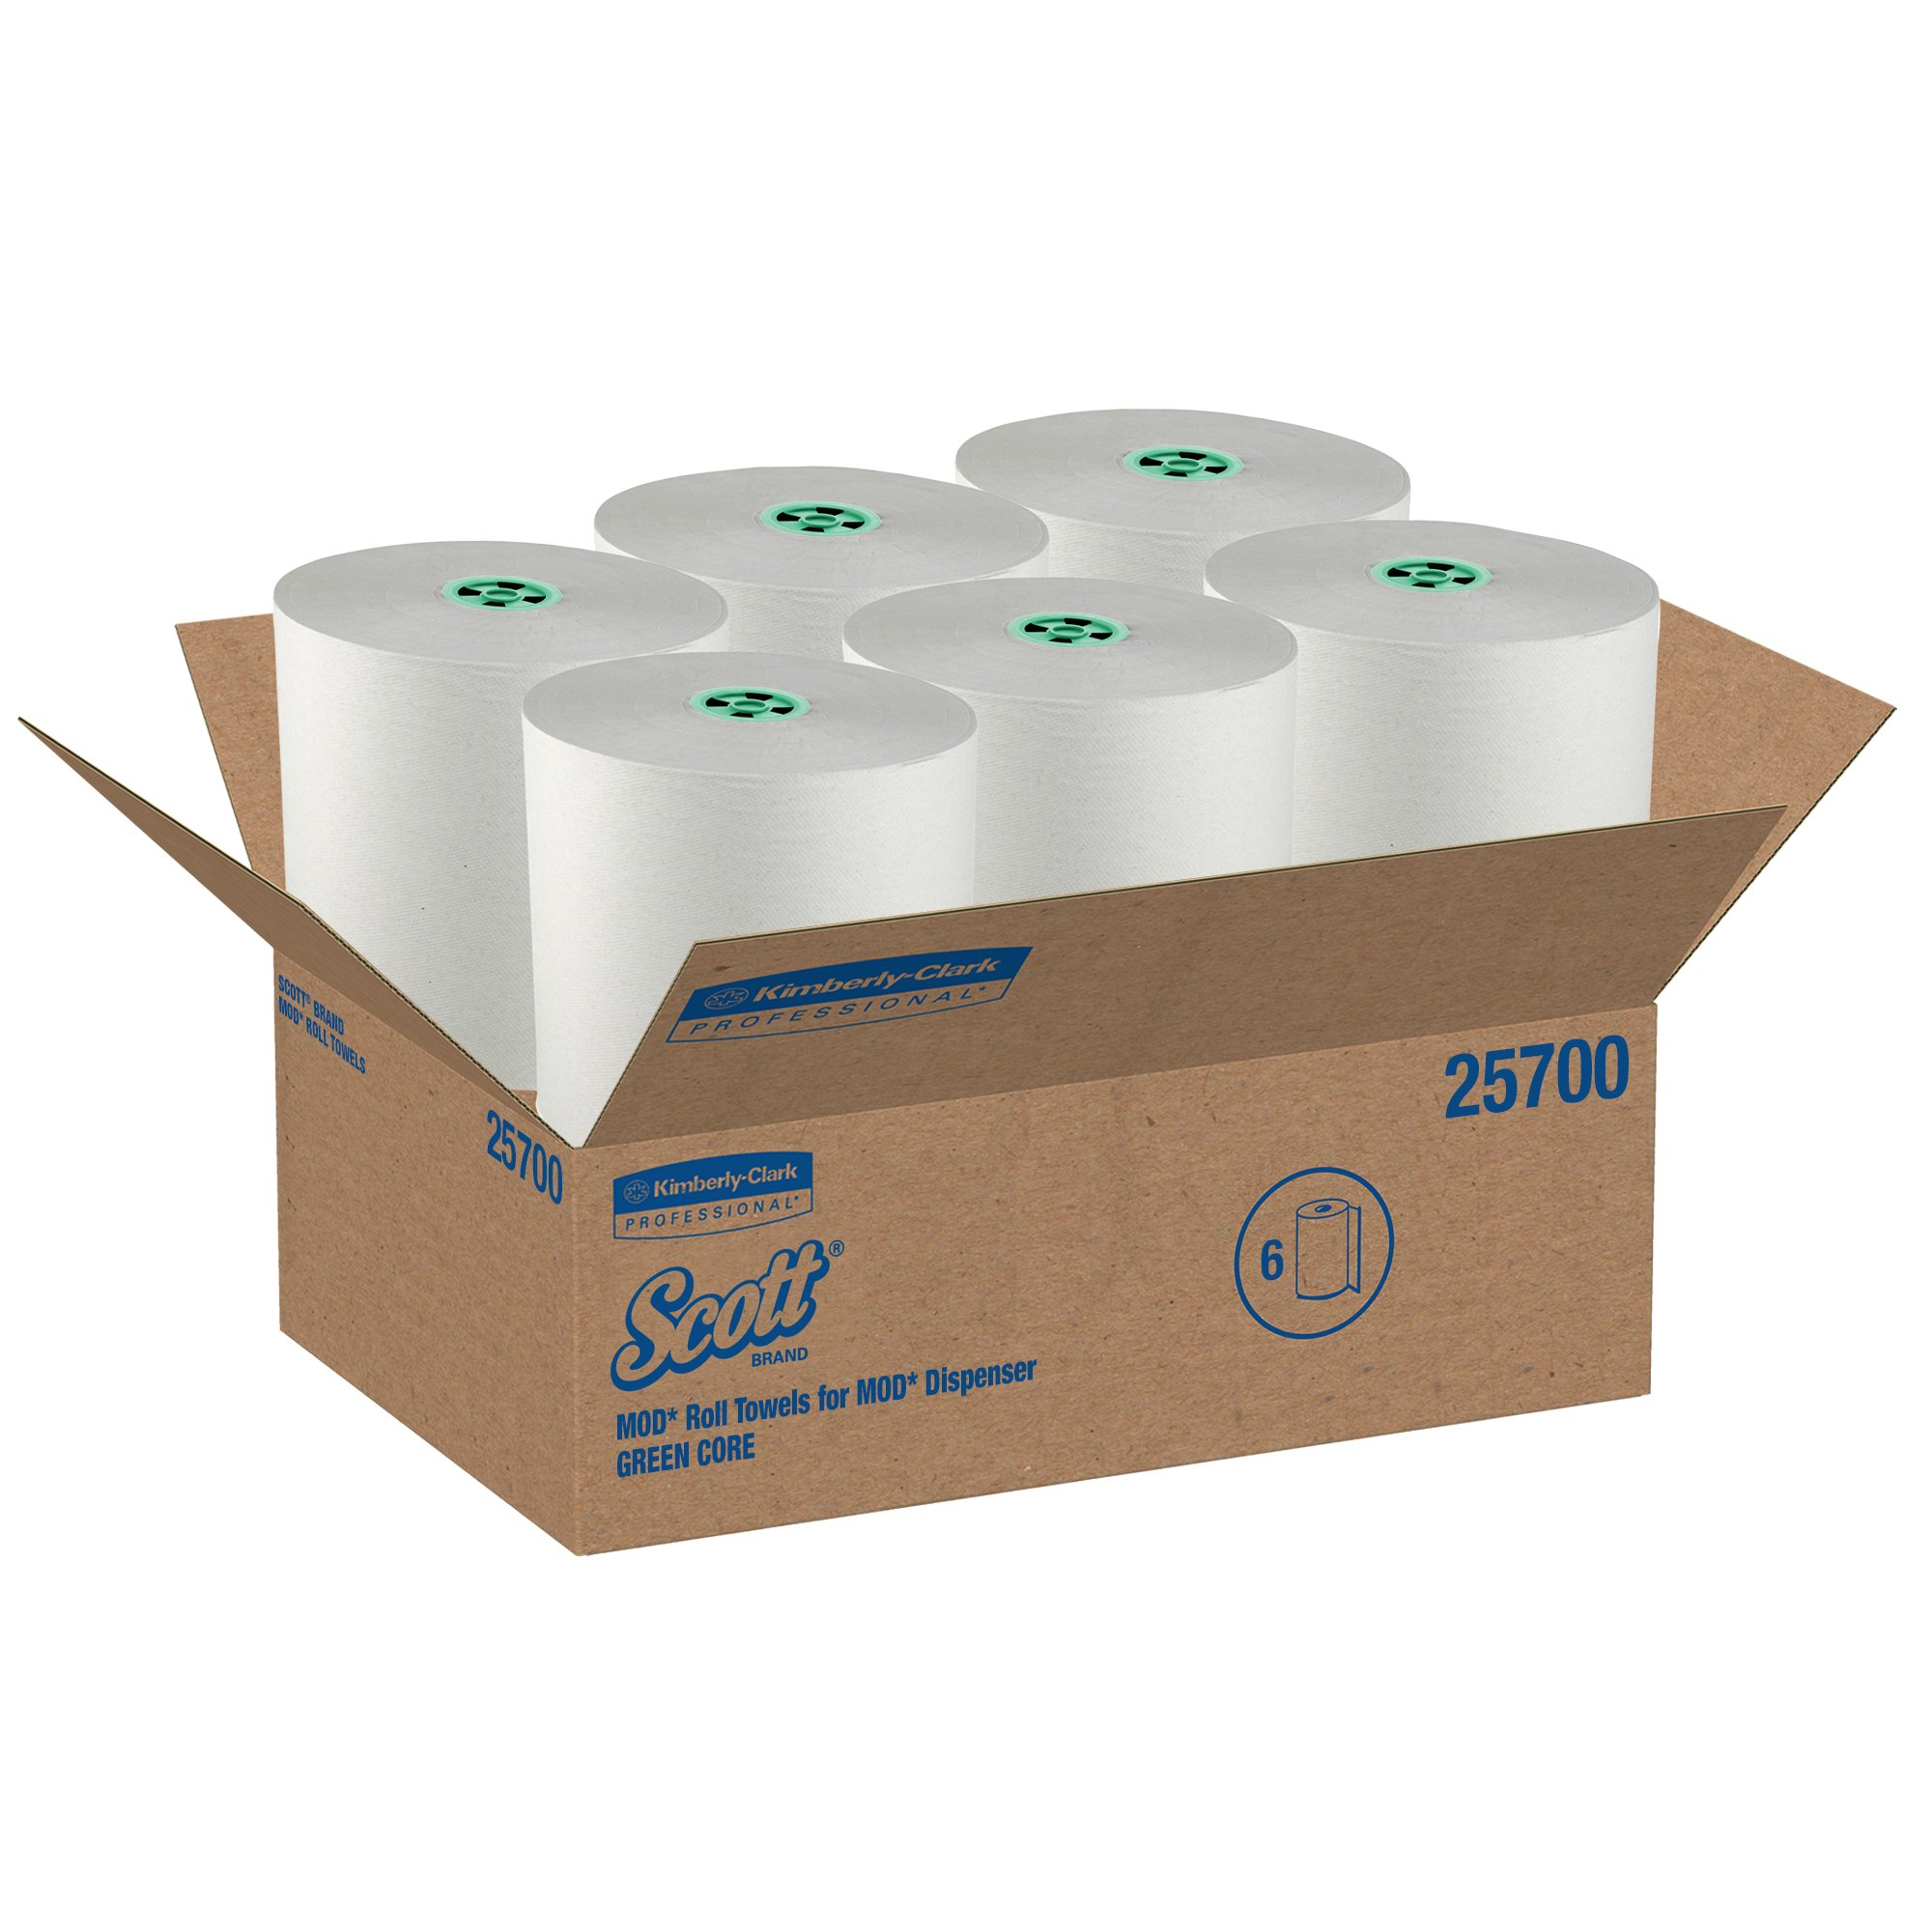 Scott Pro Hard Roll Paper Towels (25700) with Absorbency Pockets, for MOD Dispenser (Green-Colored Core only), 1150' / Roll, 6 White Rolls / Case, 6,900 feet by Kimberly-Clark Professional (Image #4)